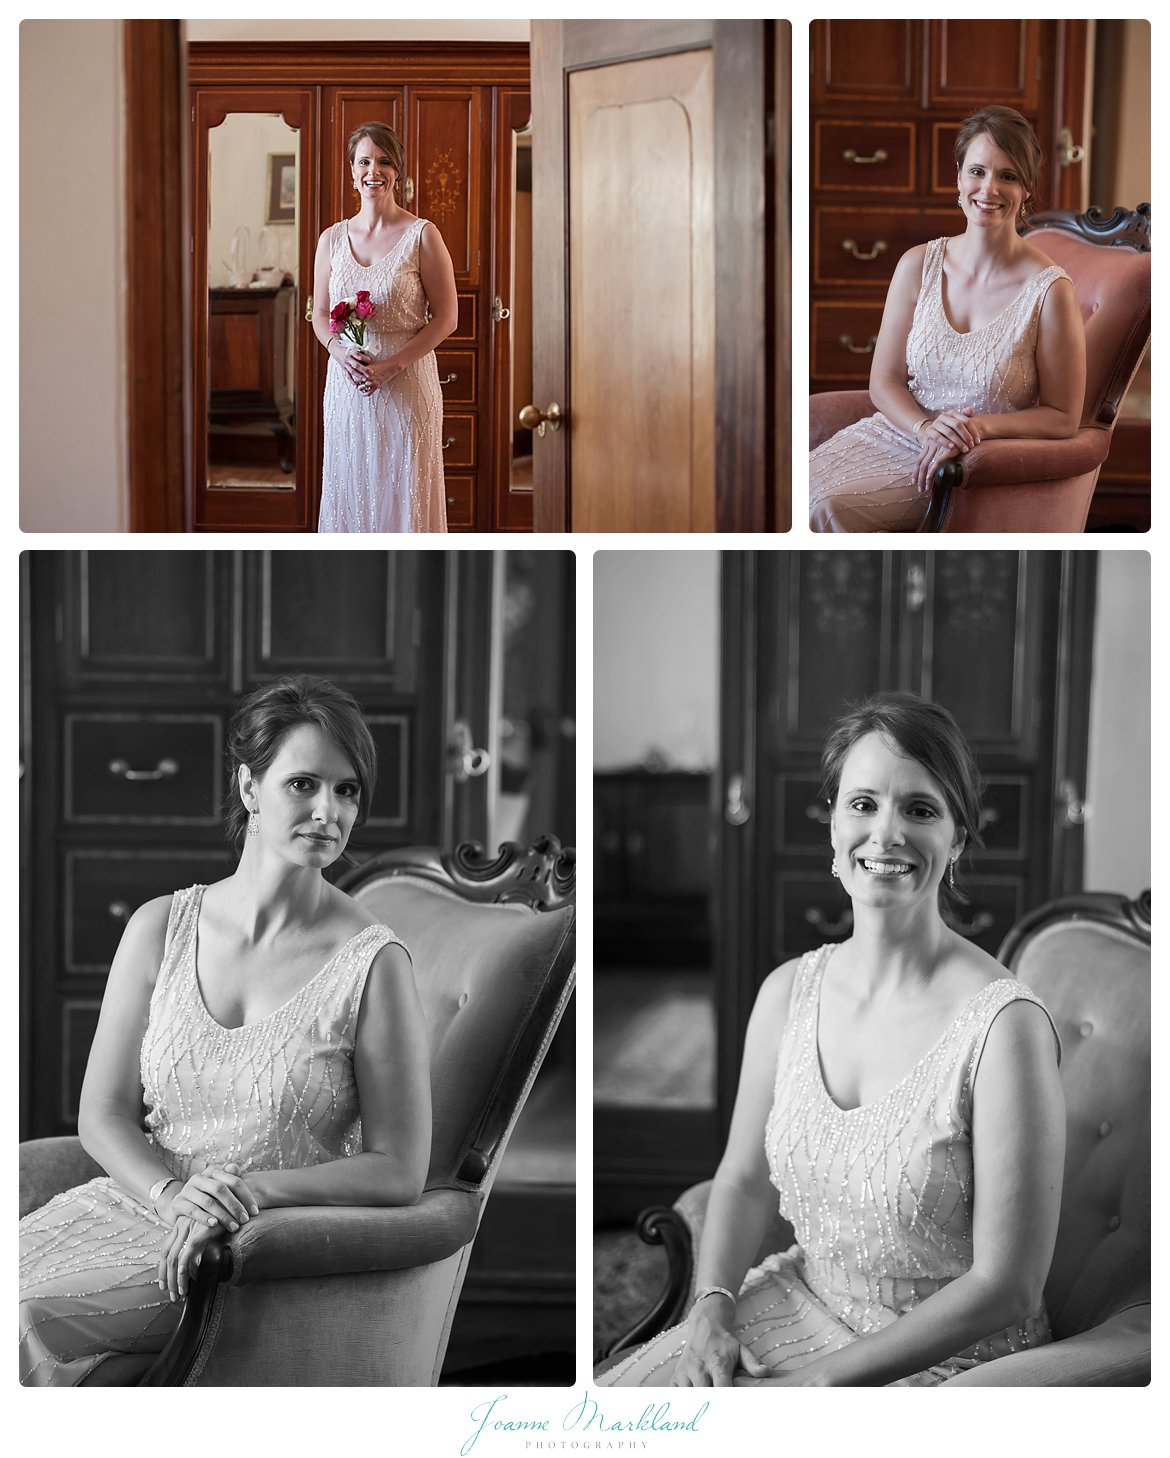 Grootepost-wedding-photography-joanne-markland-010